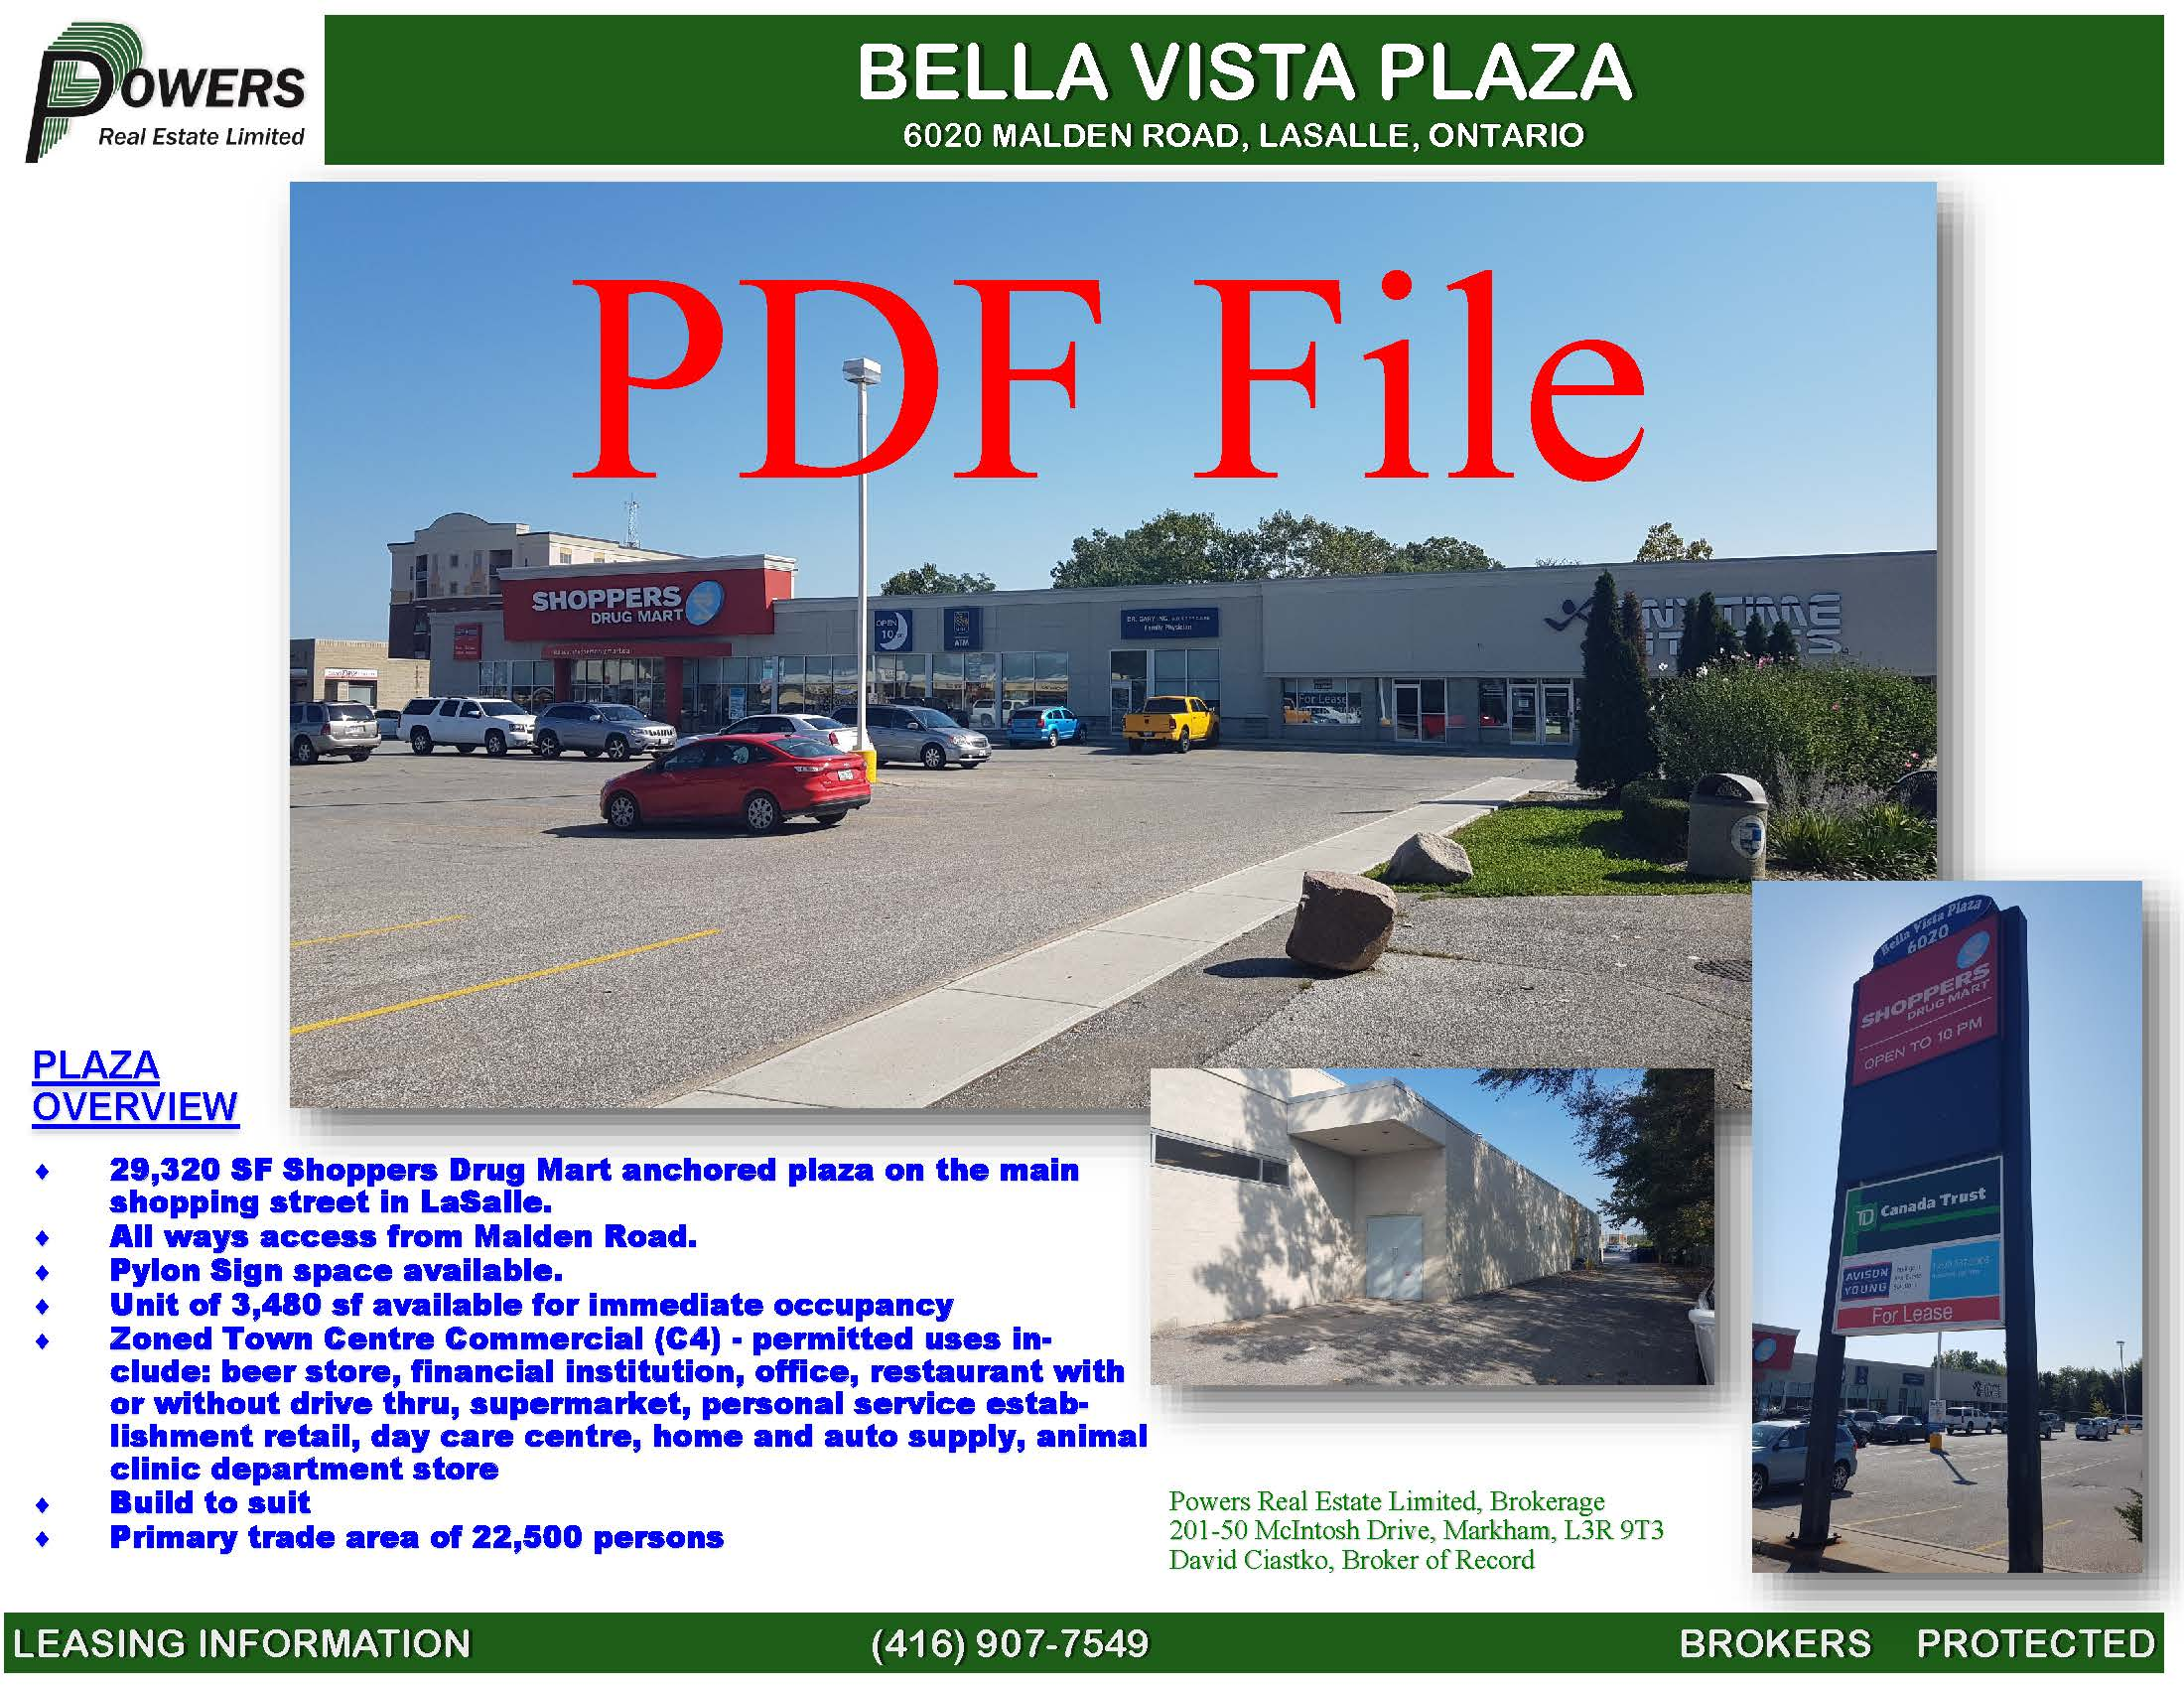 Pages from Bella Vista Plaza Marketing Brochure